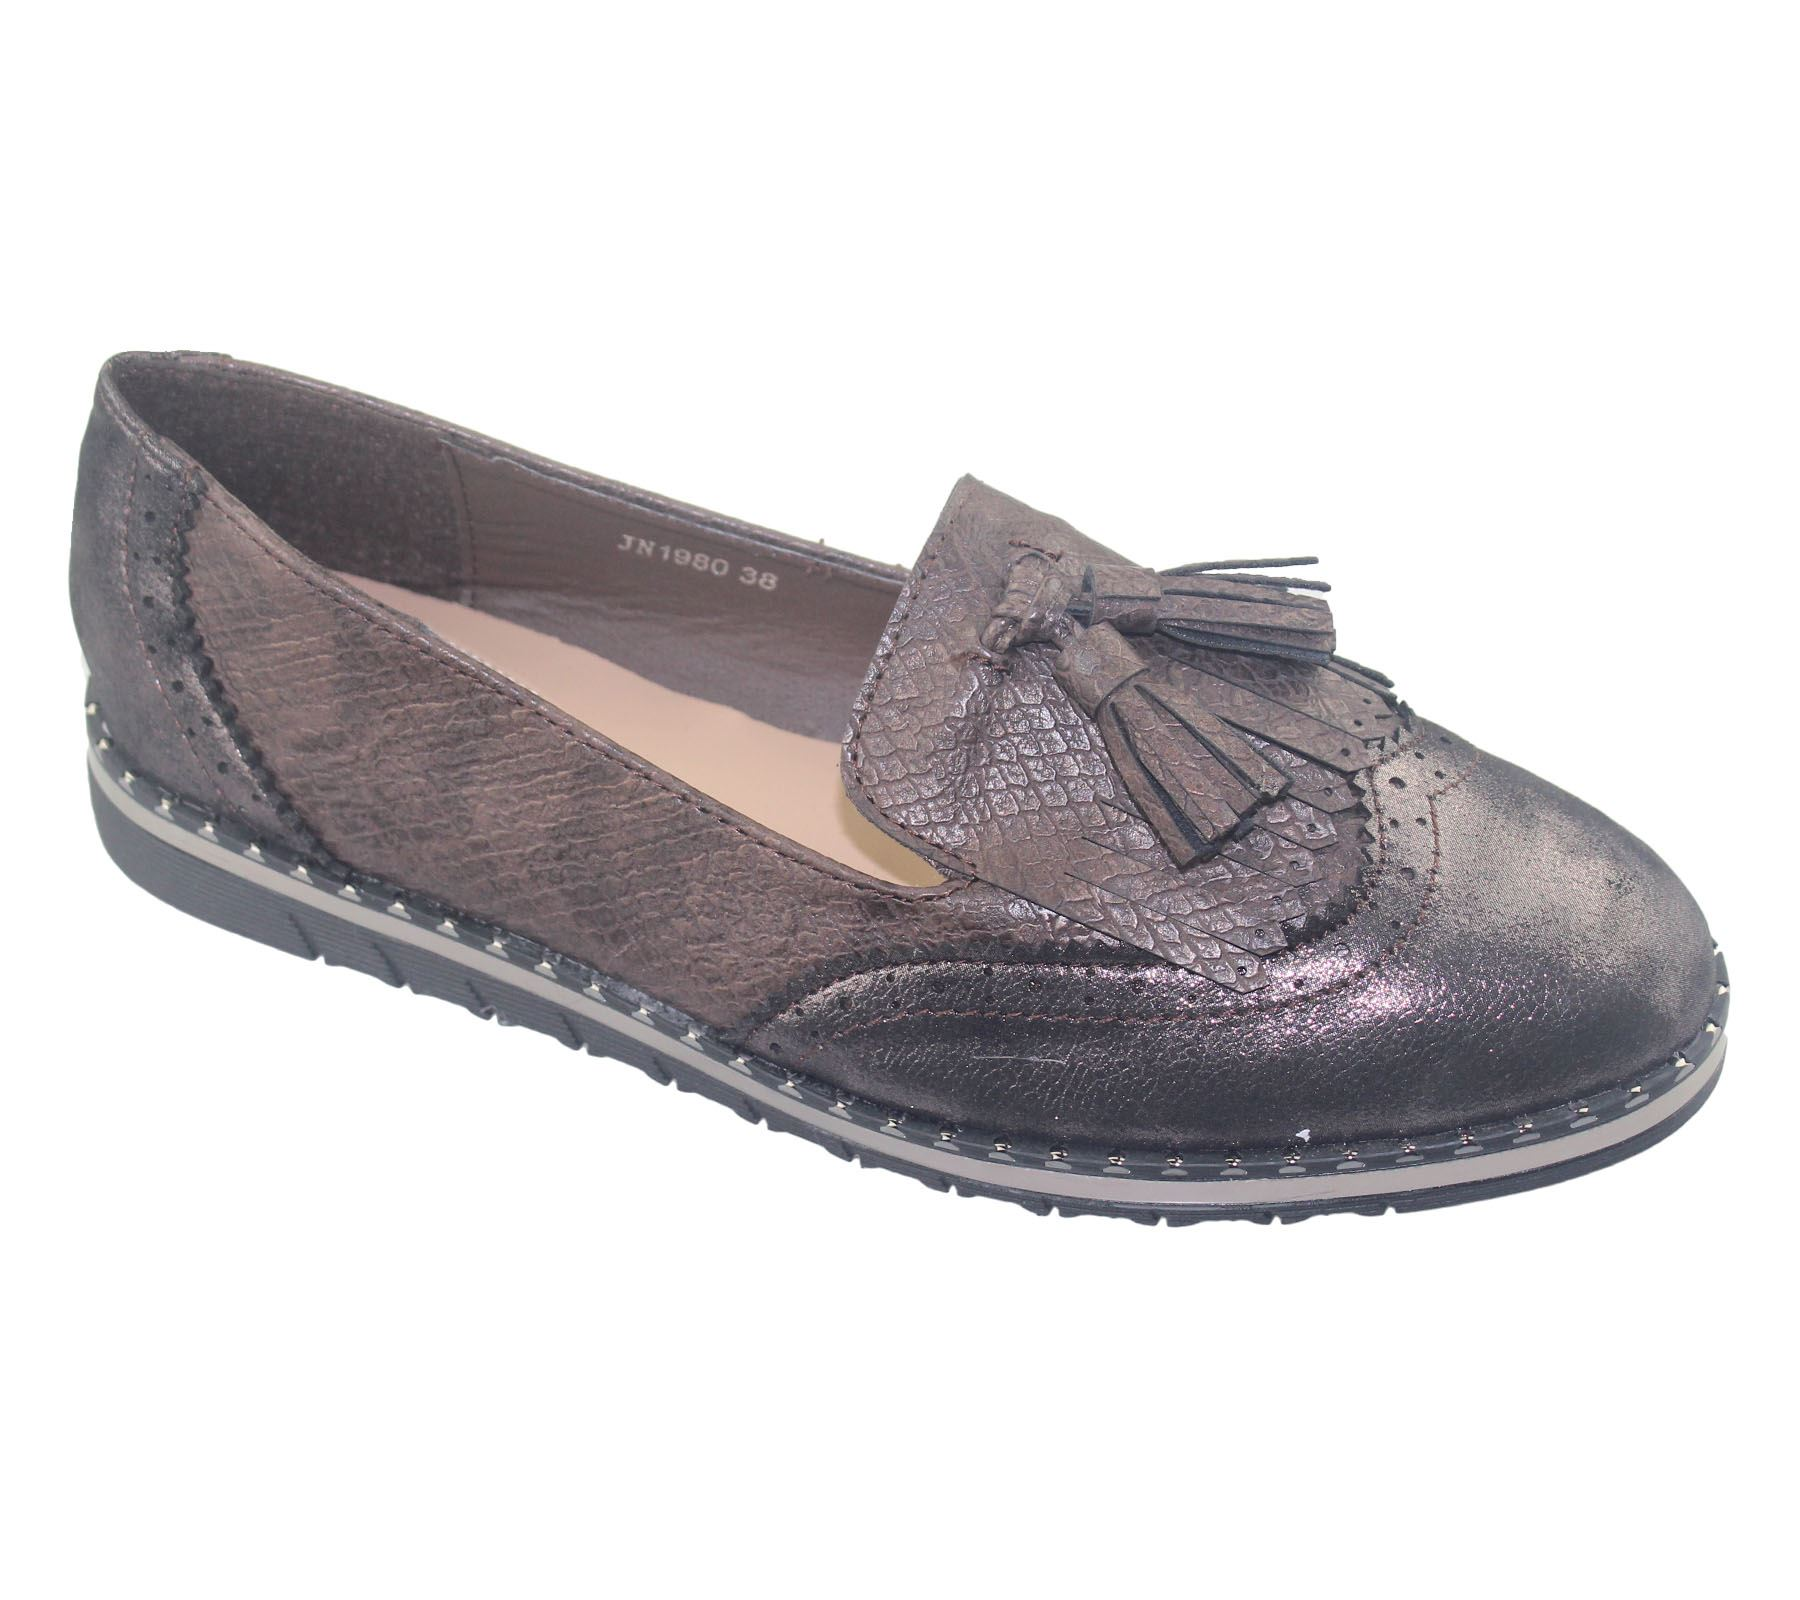 Women-Brogue-Shoes-Ladies-Tassel-Oxford-Office-Snack-Pattent-Loafers-Pumps thumbnail 12